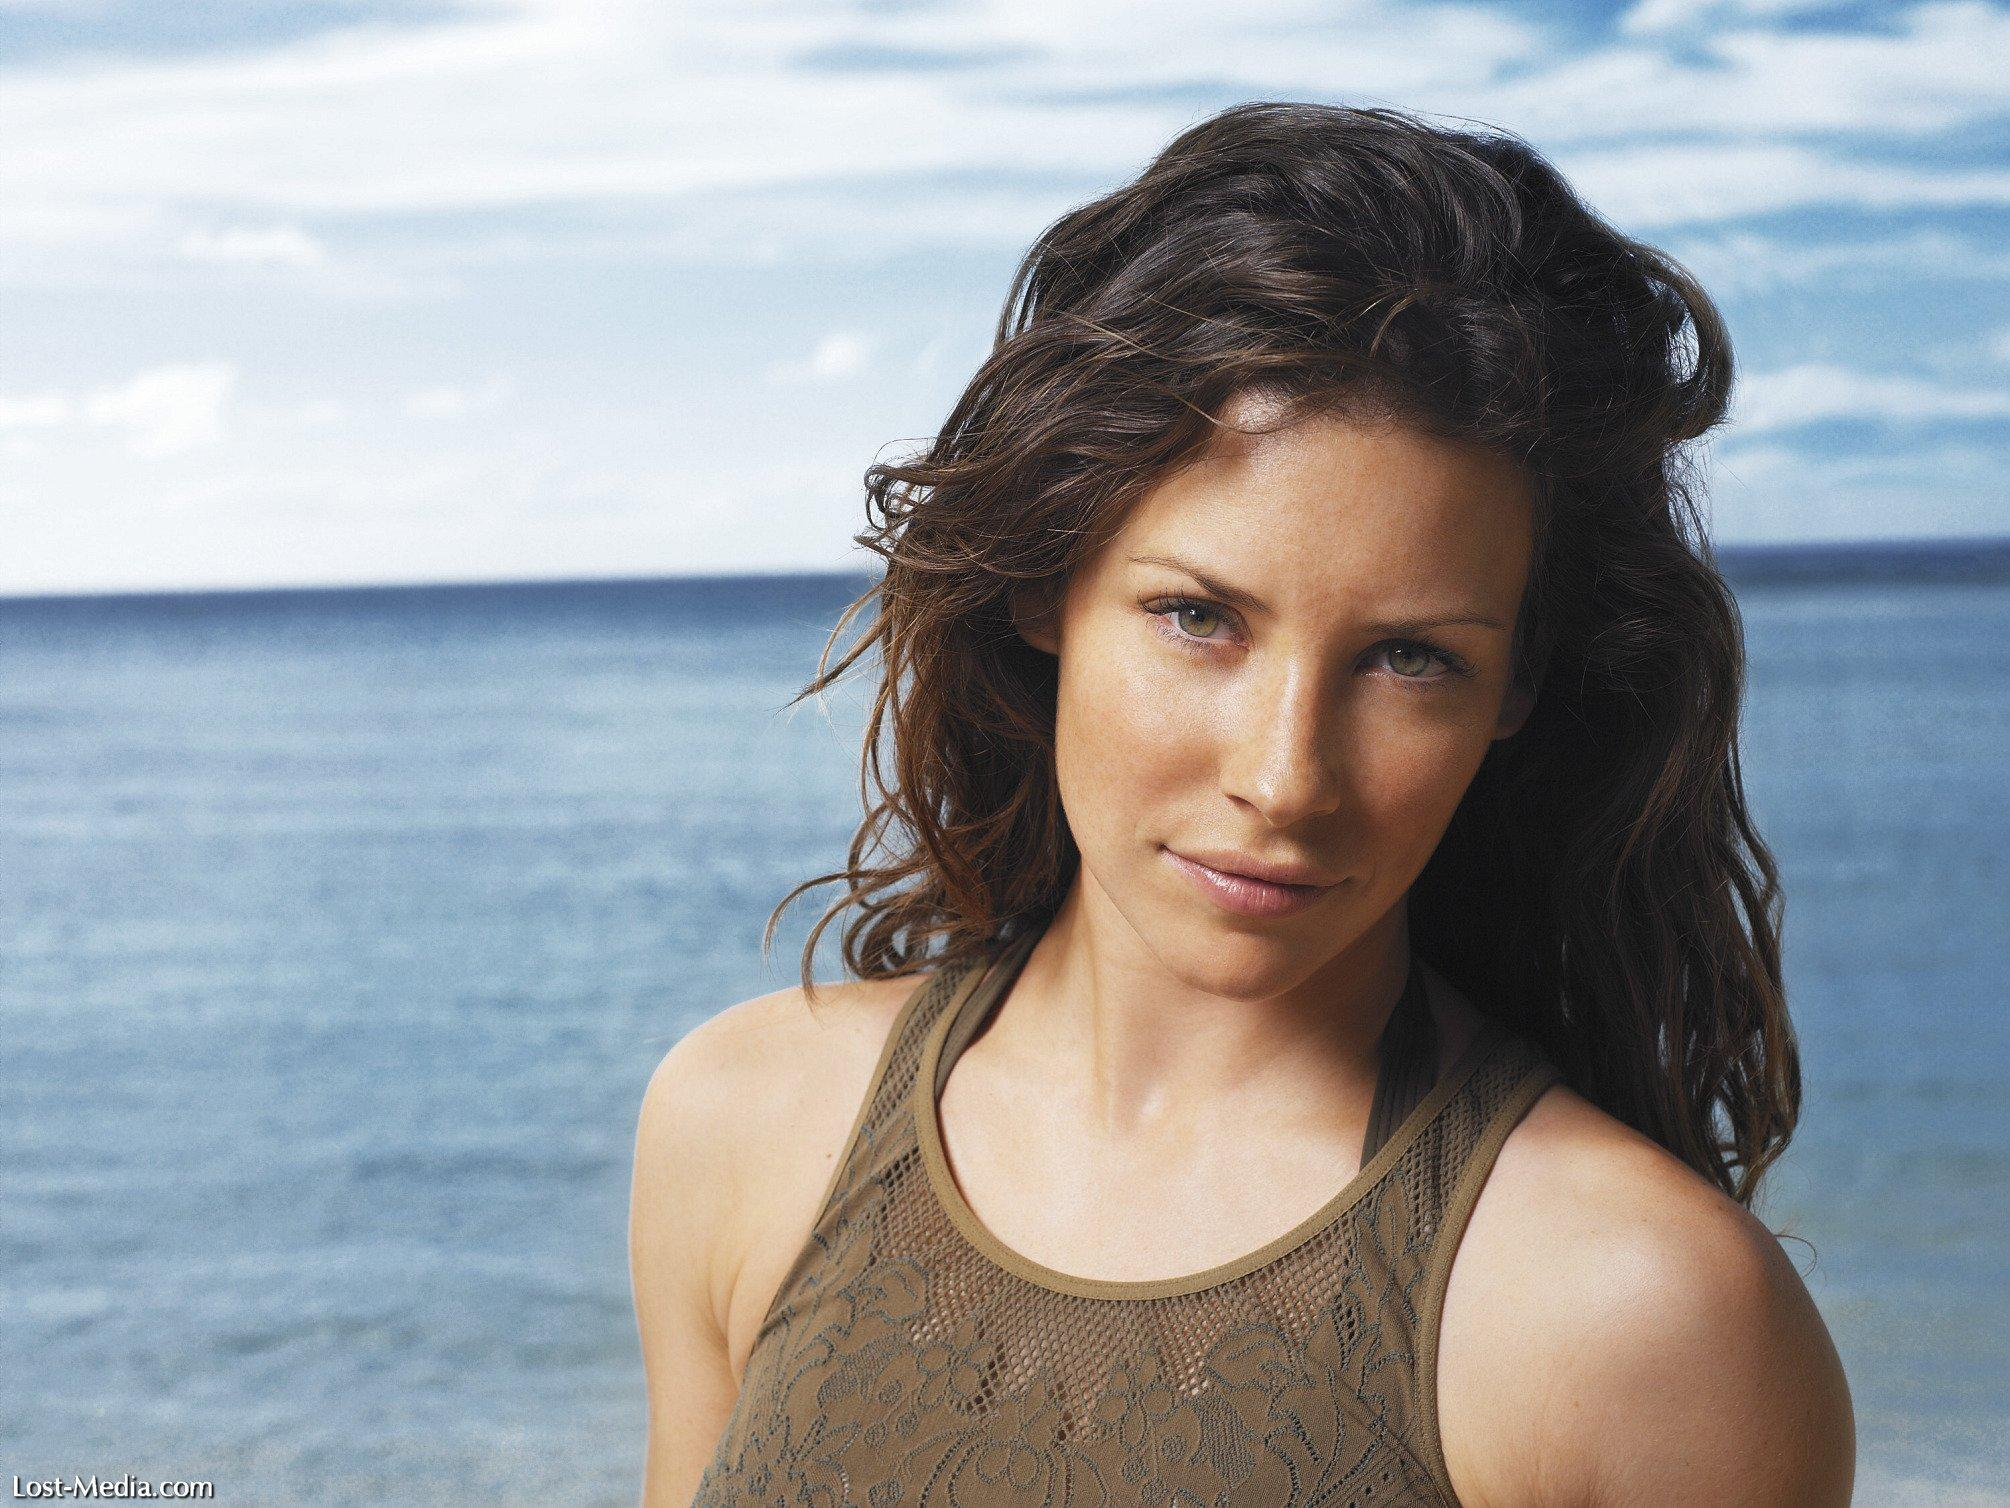 ... News: Evangeline Lilly in Talks for Role in Ant-Man | Digital Trends